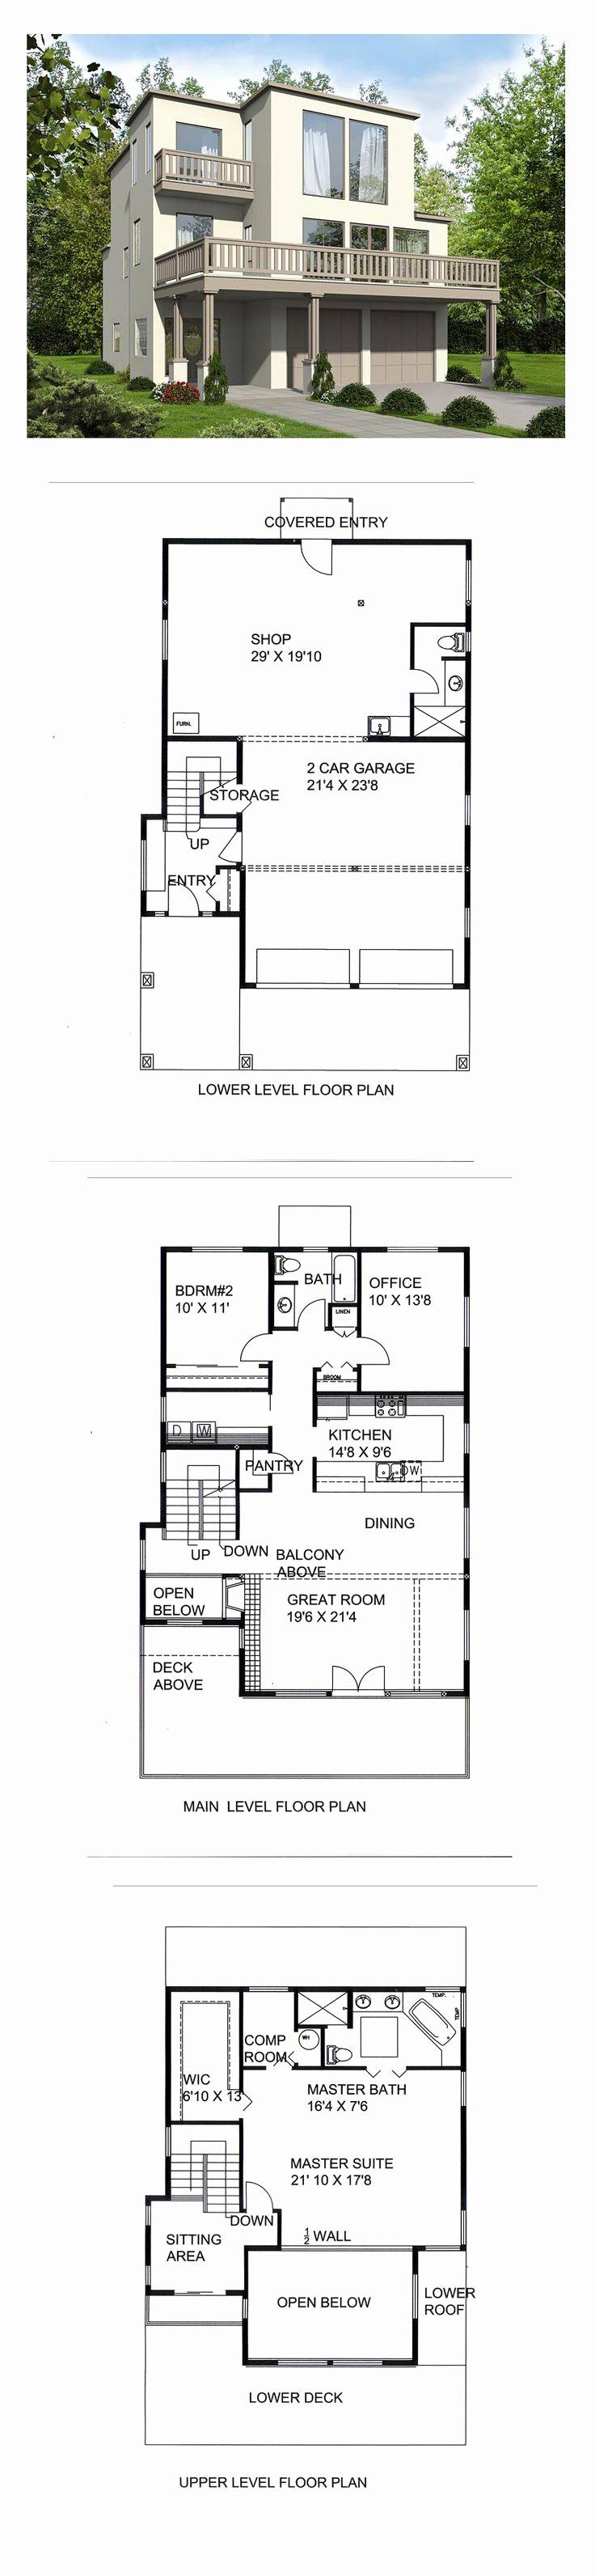 Theplancollection Luxury House Plans Plan